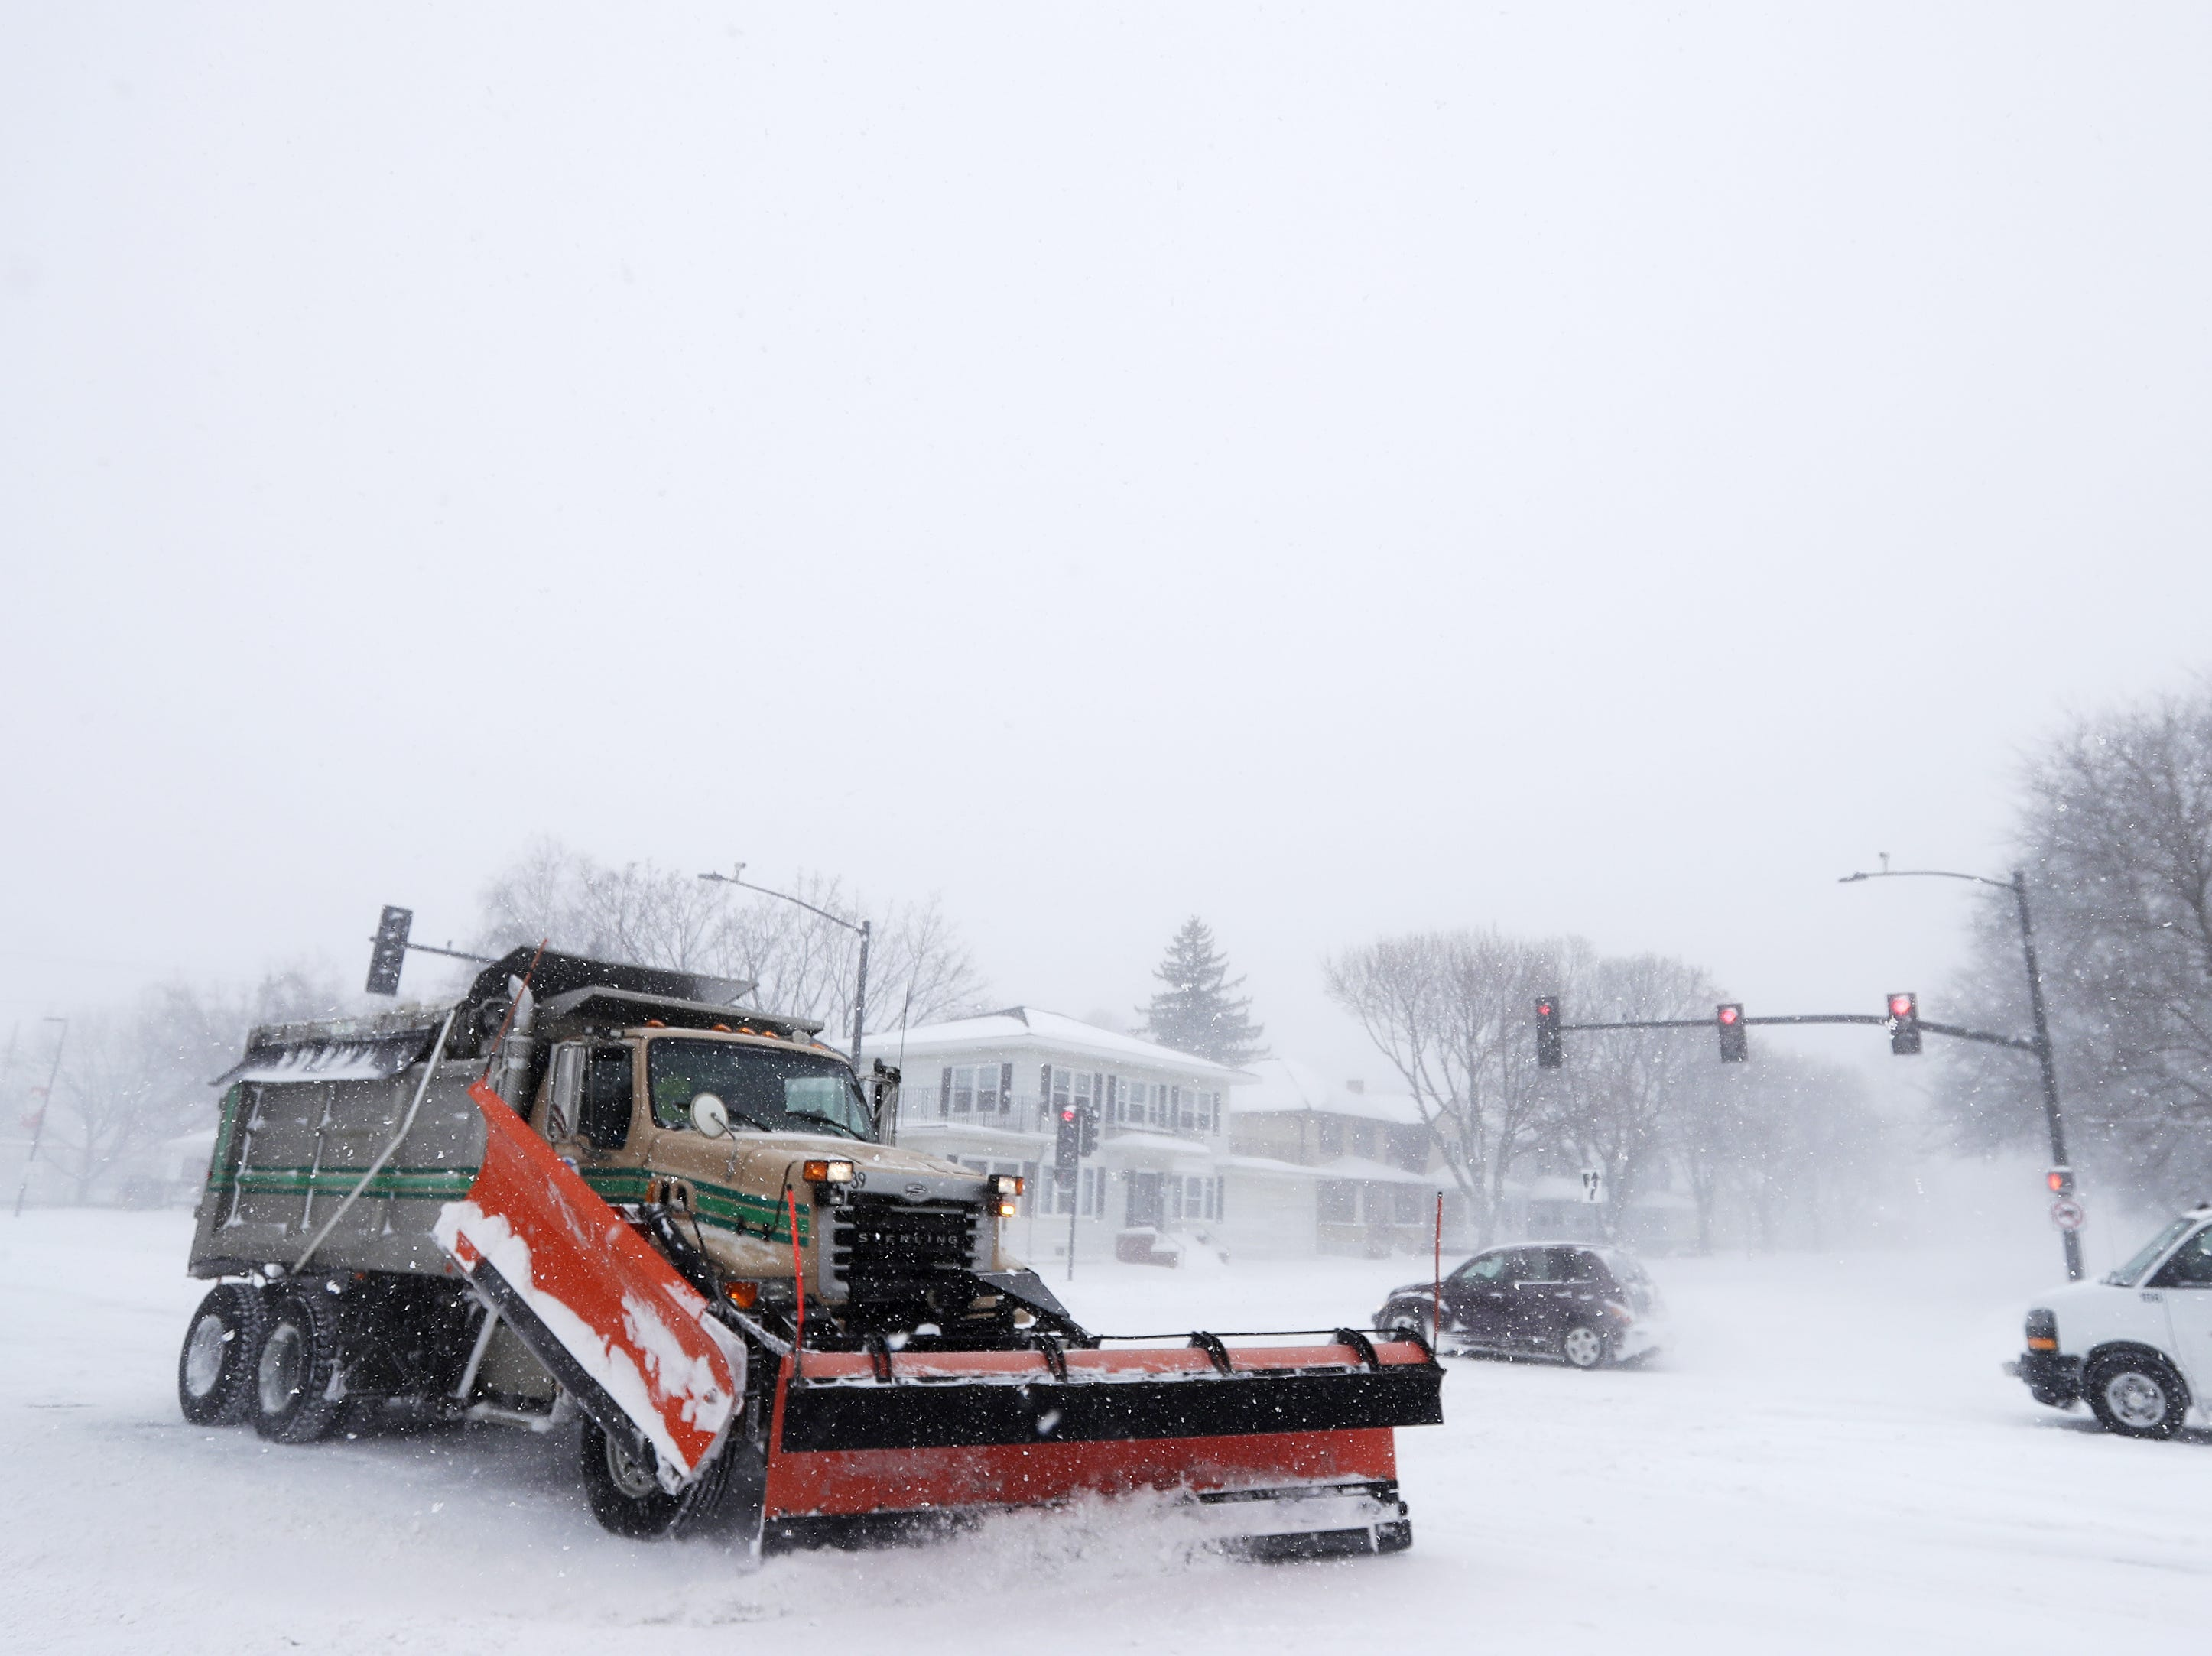 City snow plows clear streets during a snowstorm on Monday, Jan. 28, 2019, in Green Bay, Wis.